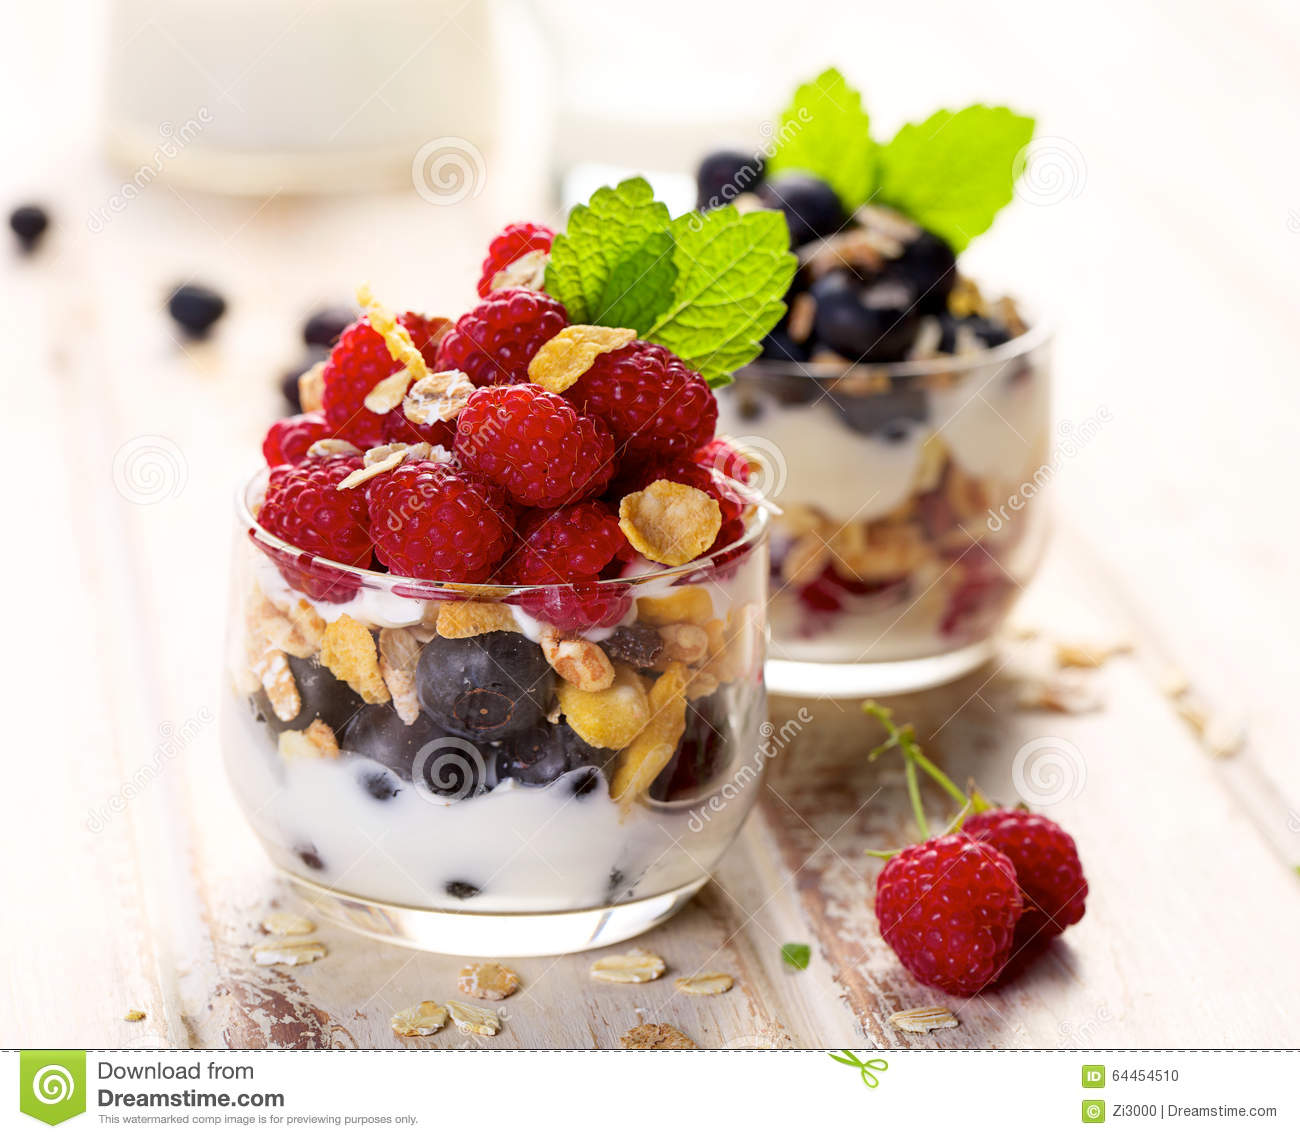 Healthy Yogurt Breakfast Parfait With Blueberries & Granola Recipes ...